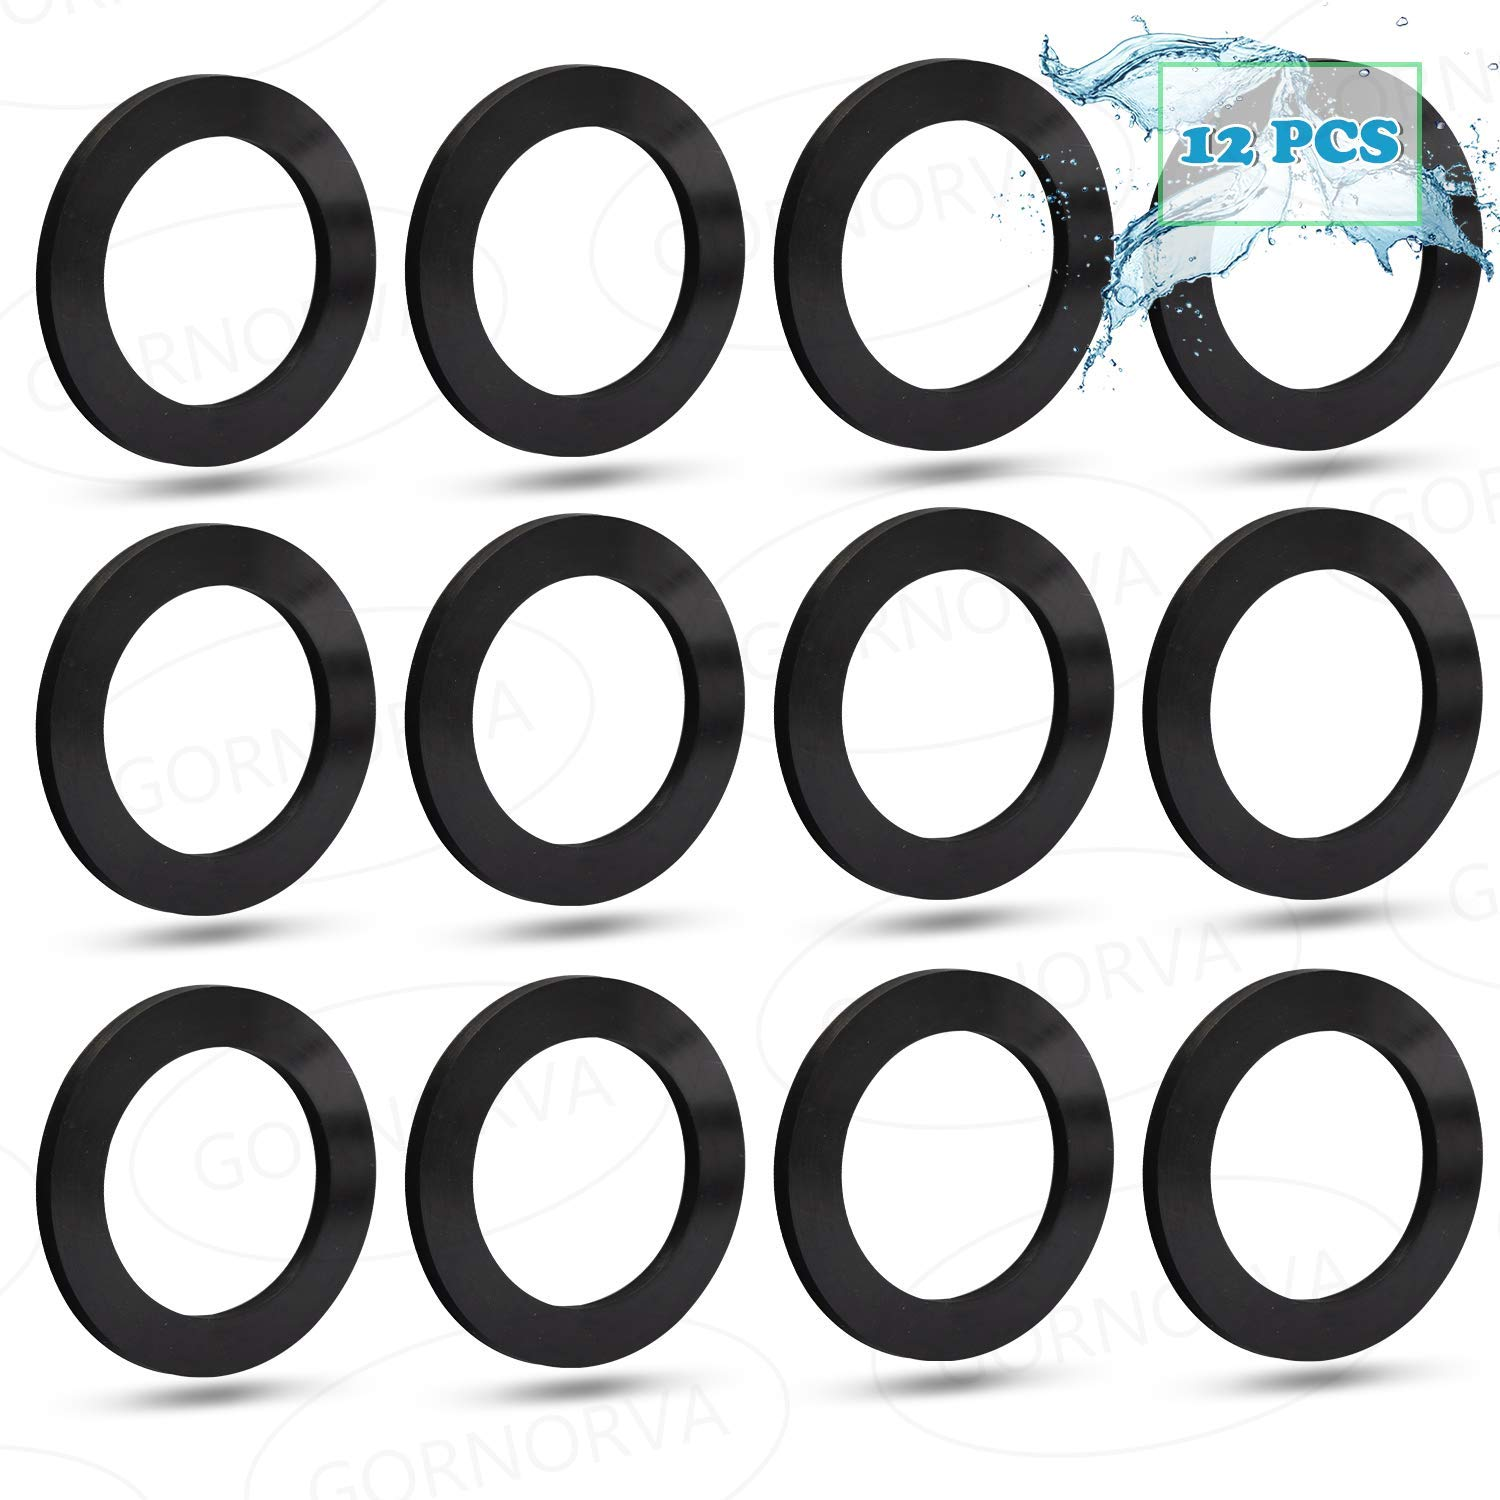 GORNORVA 12PCS 25076RP Large Strainer Rubber Washer for 1-1/2in Fittings for Intex Pool Plunger Valves and Intex Replacement Gasket- P/N10745